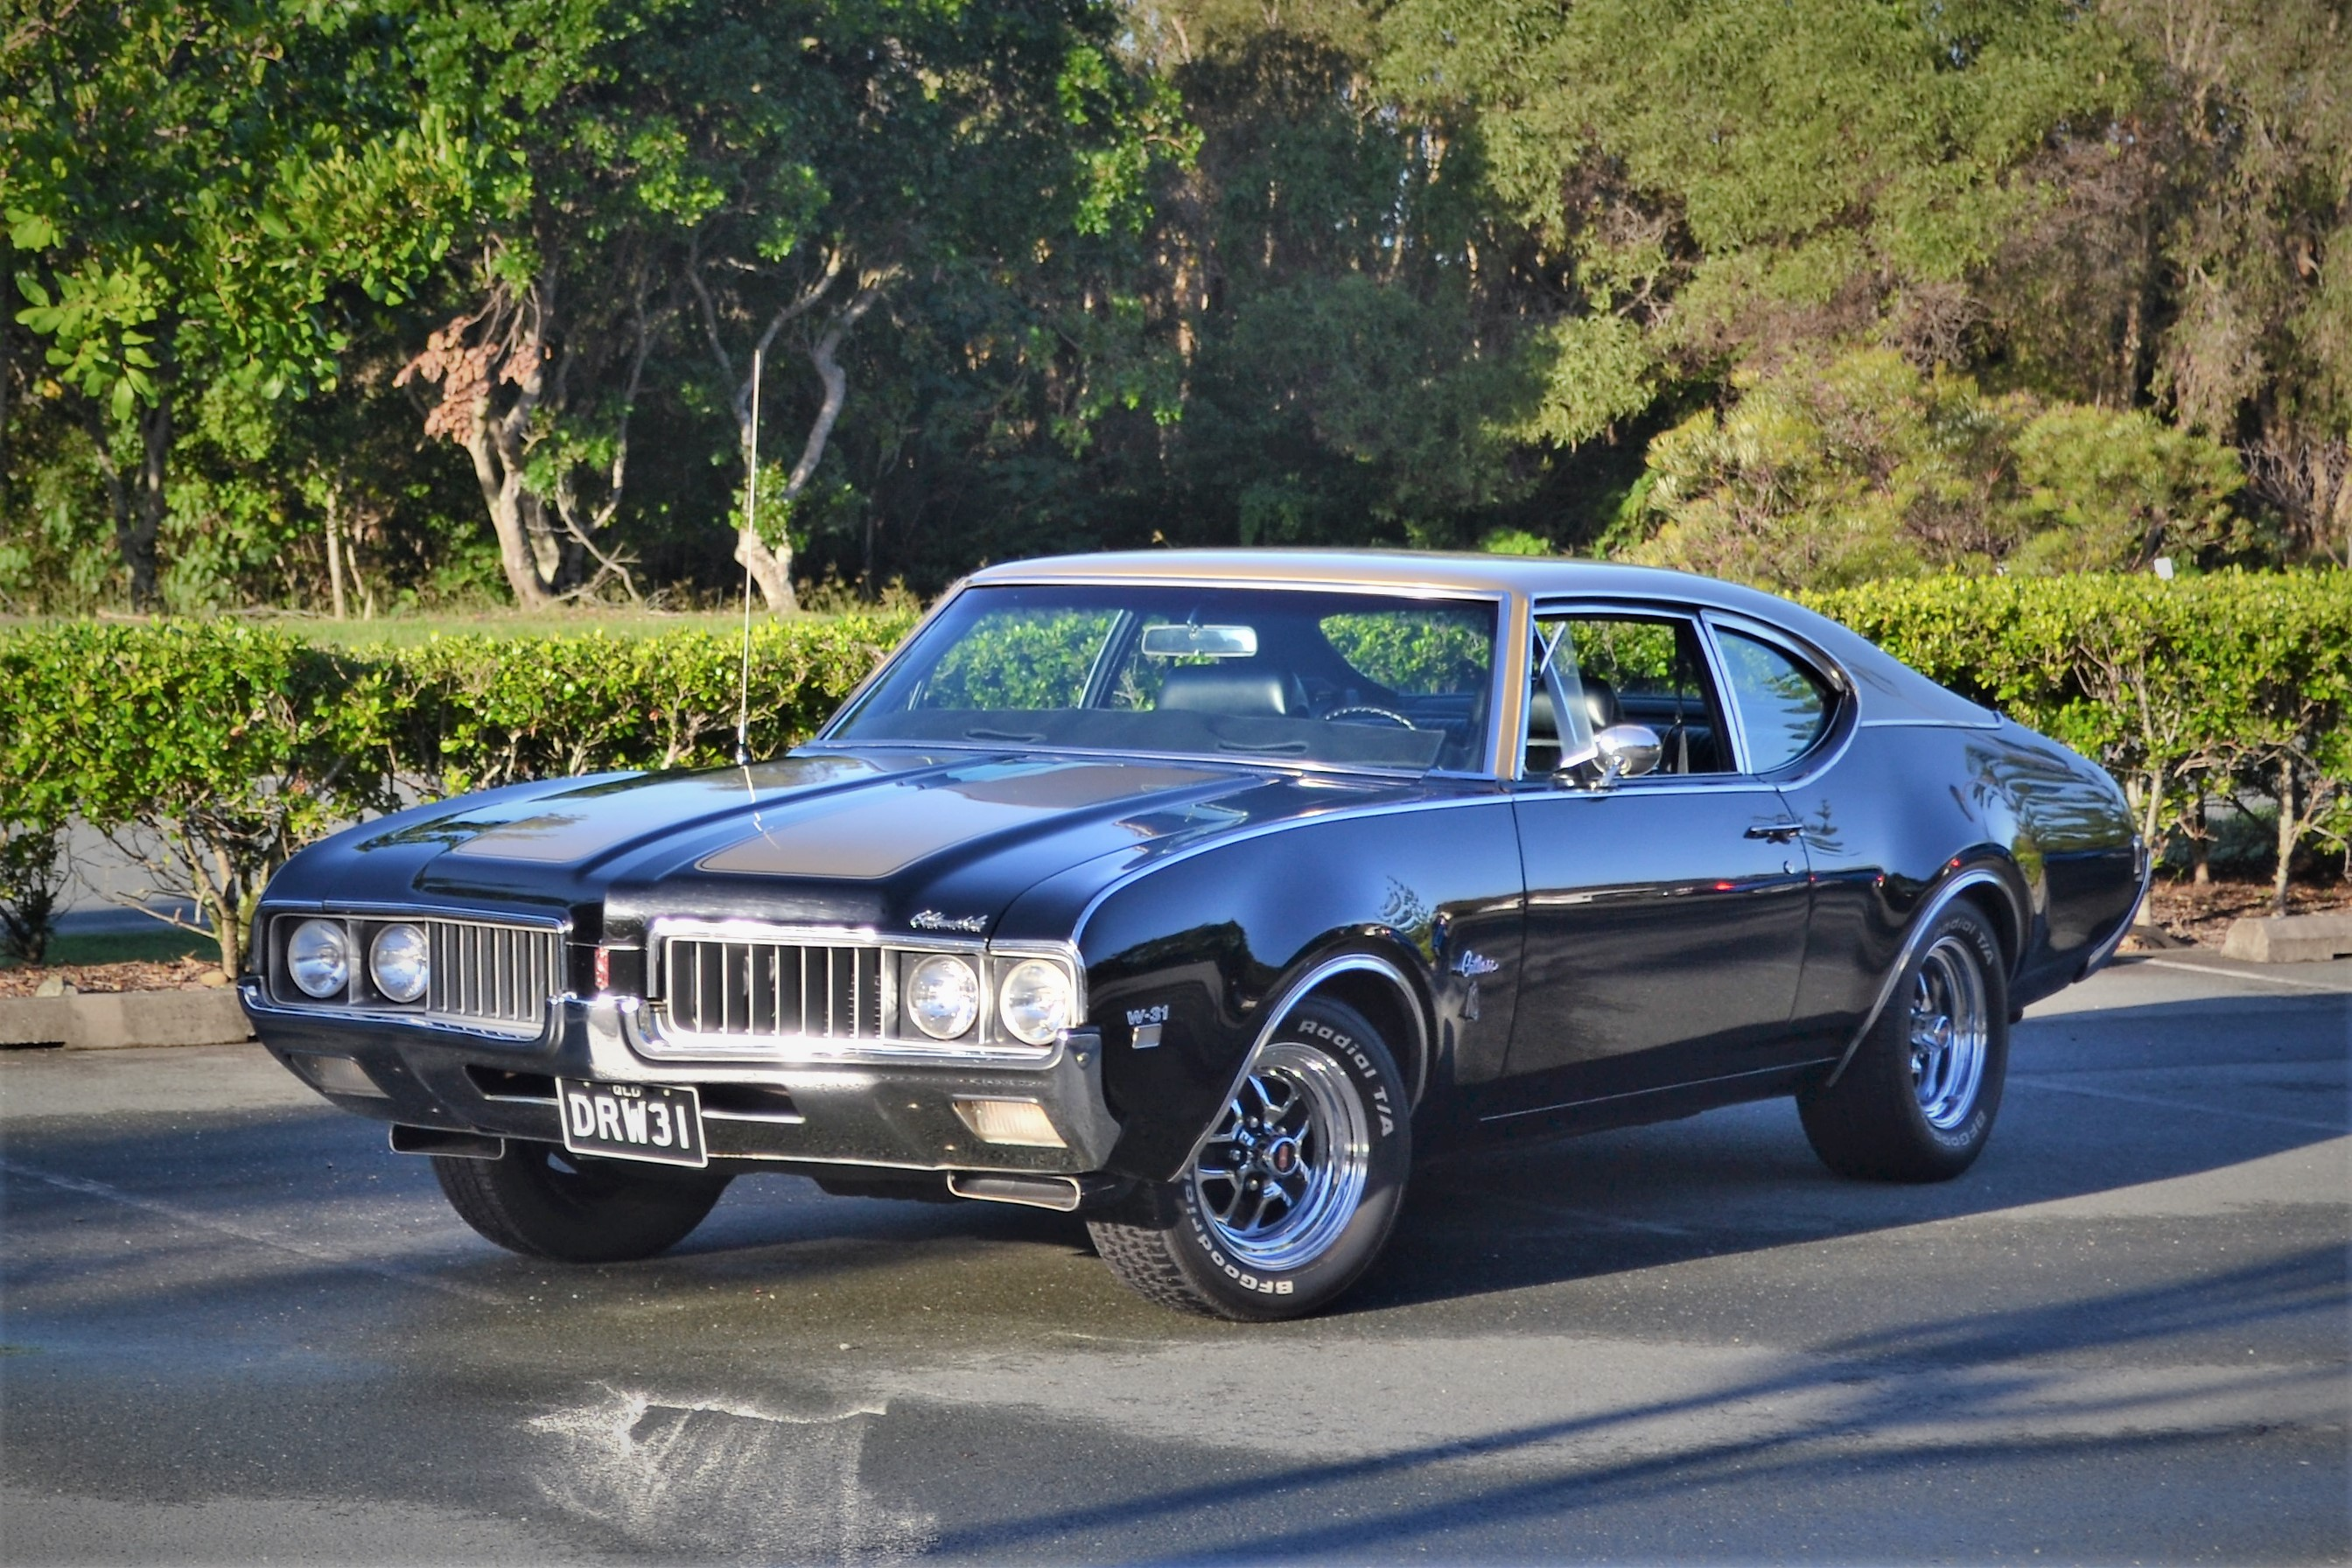 Oldsmobile Cutlass Cars for sale in Australia - JUST CARS